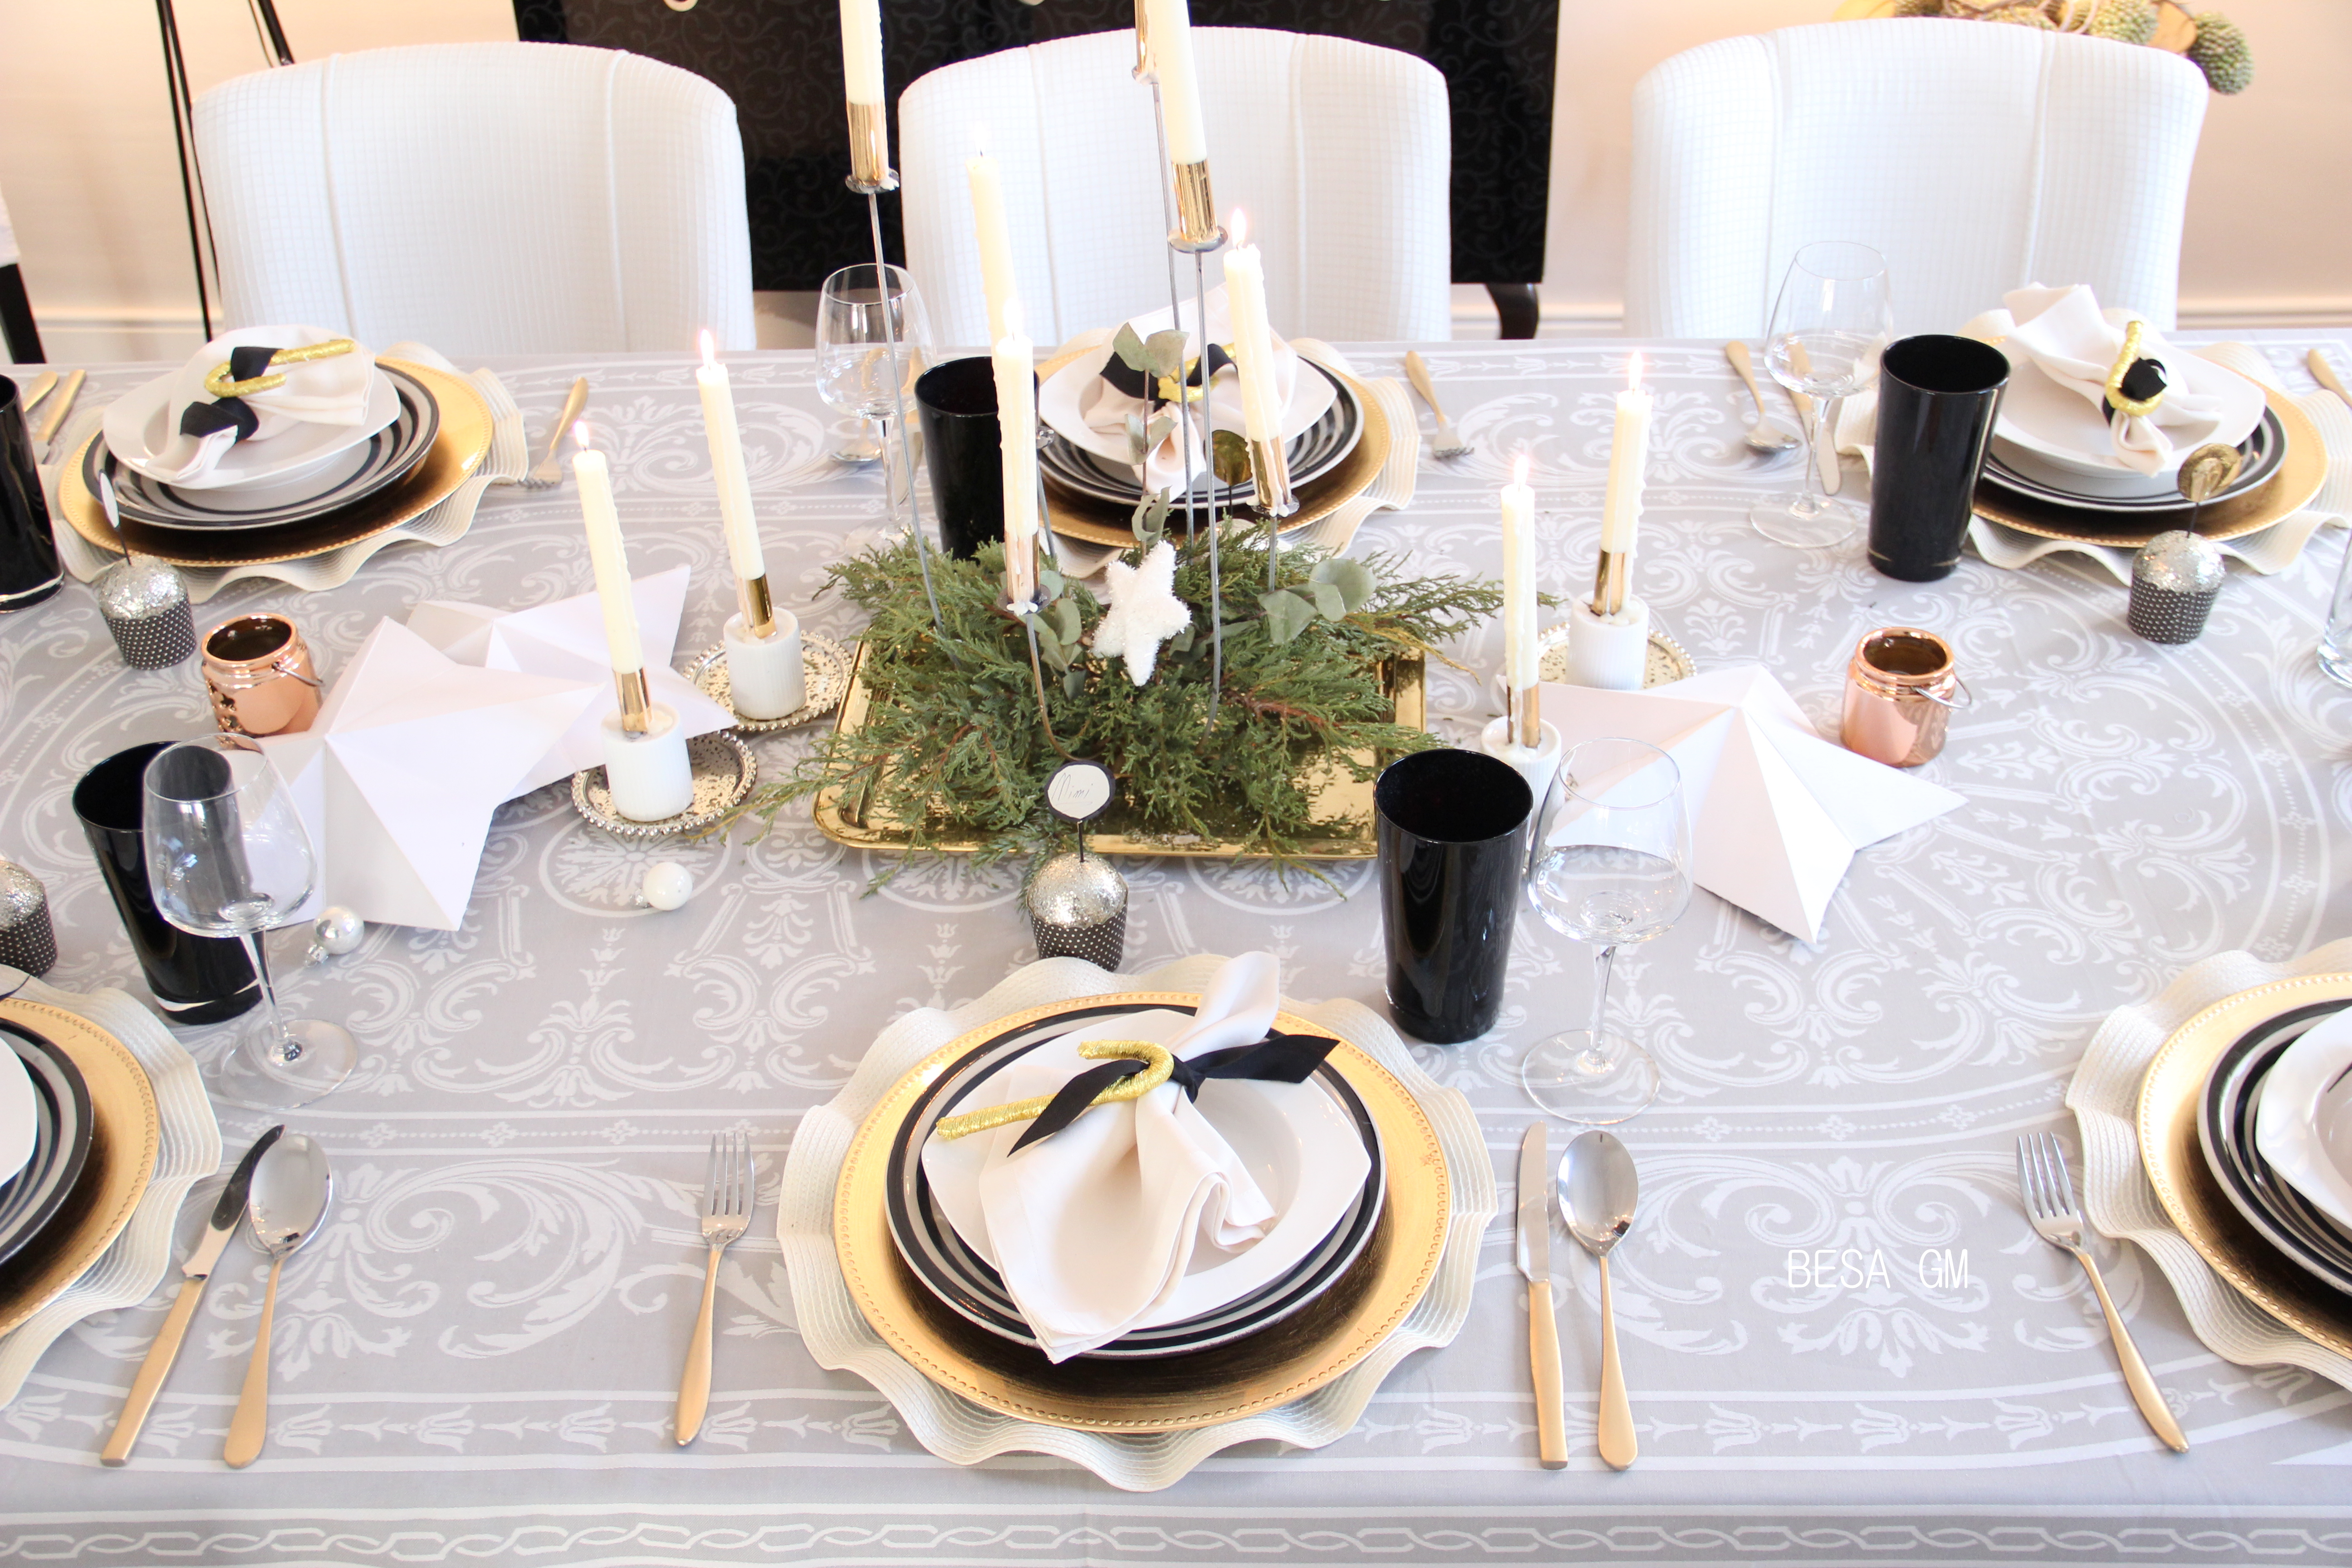 December 2016 besa gm place cards in this table setting are another diy and they turned super super cute i will be also sharing how i made them solutioingenieria Gallery